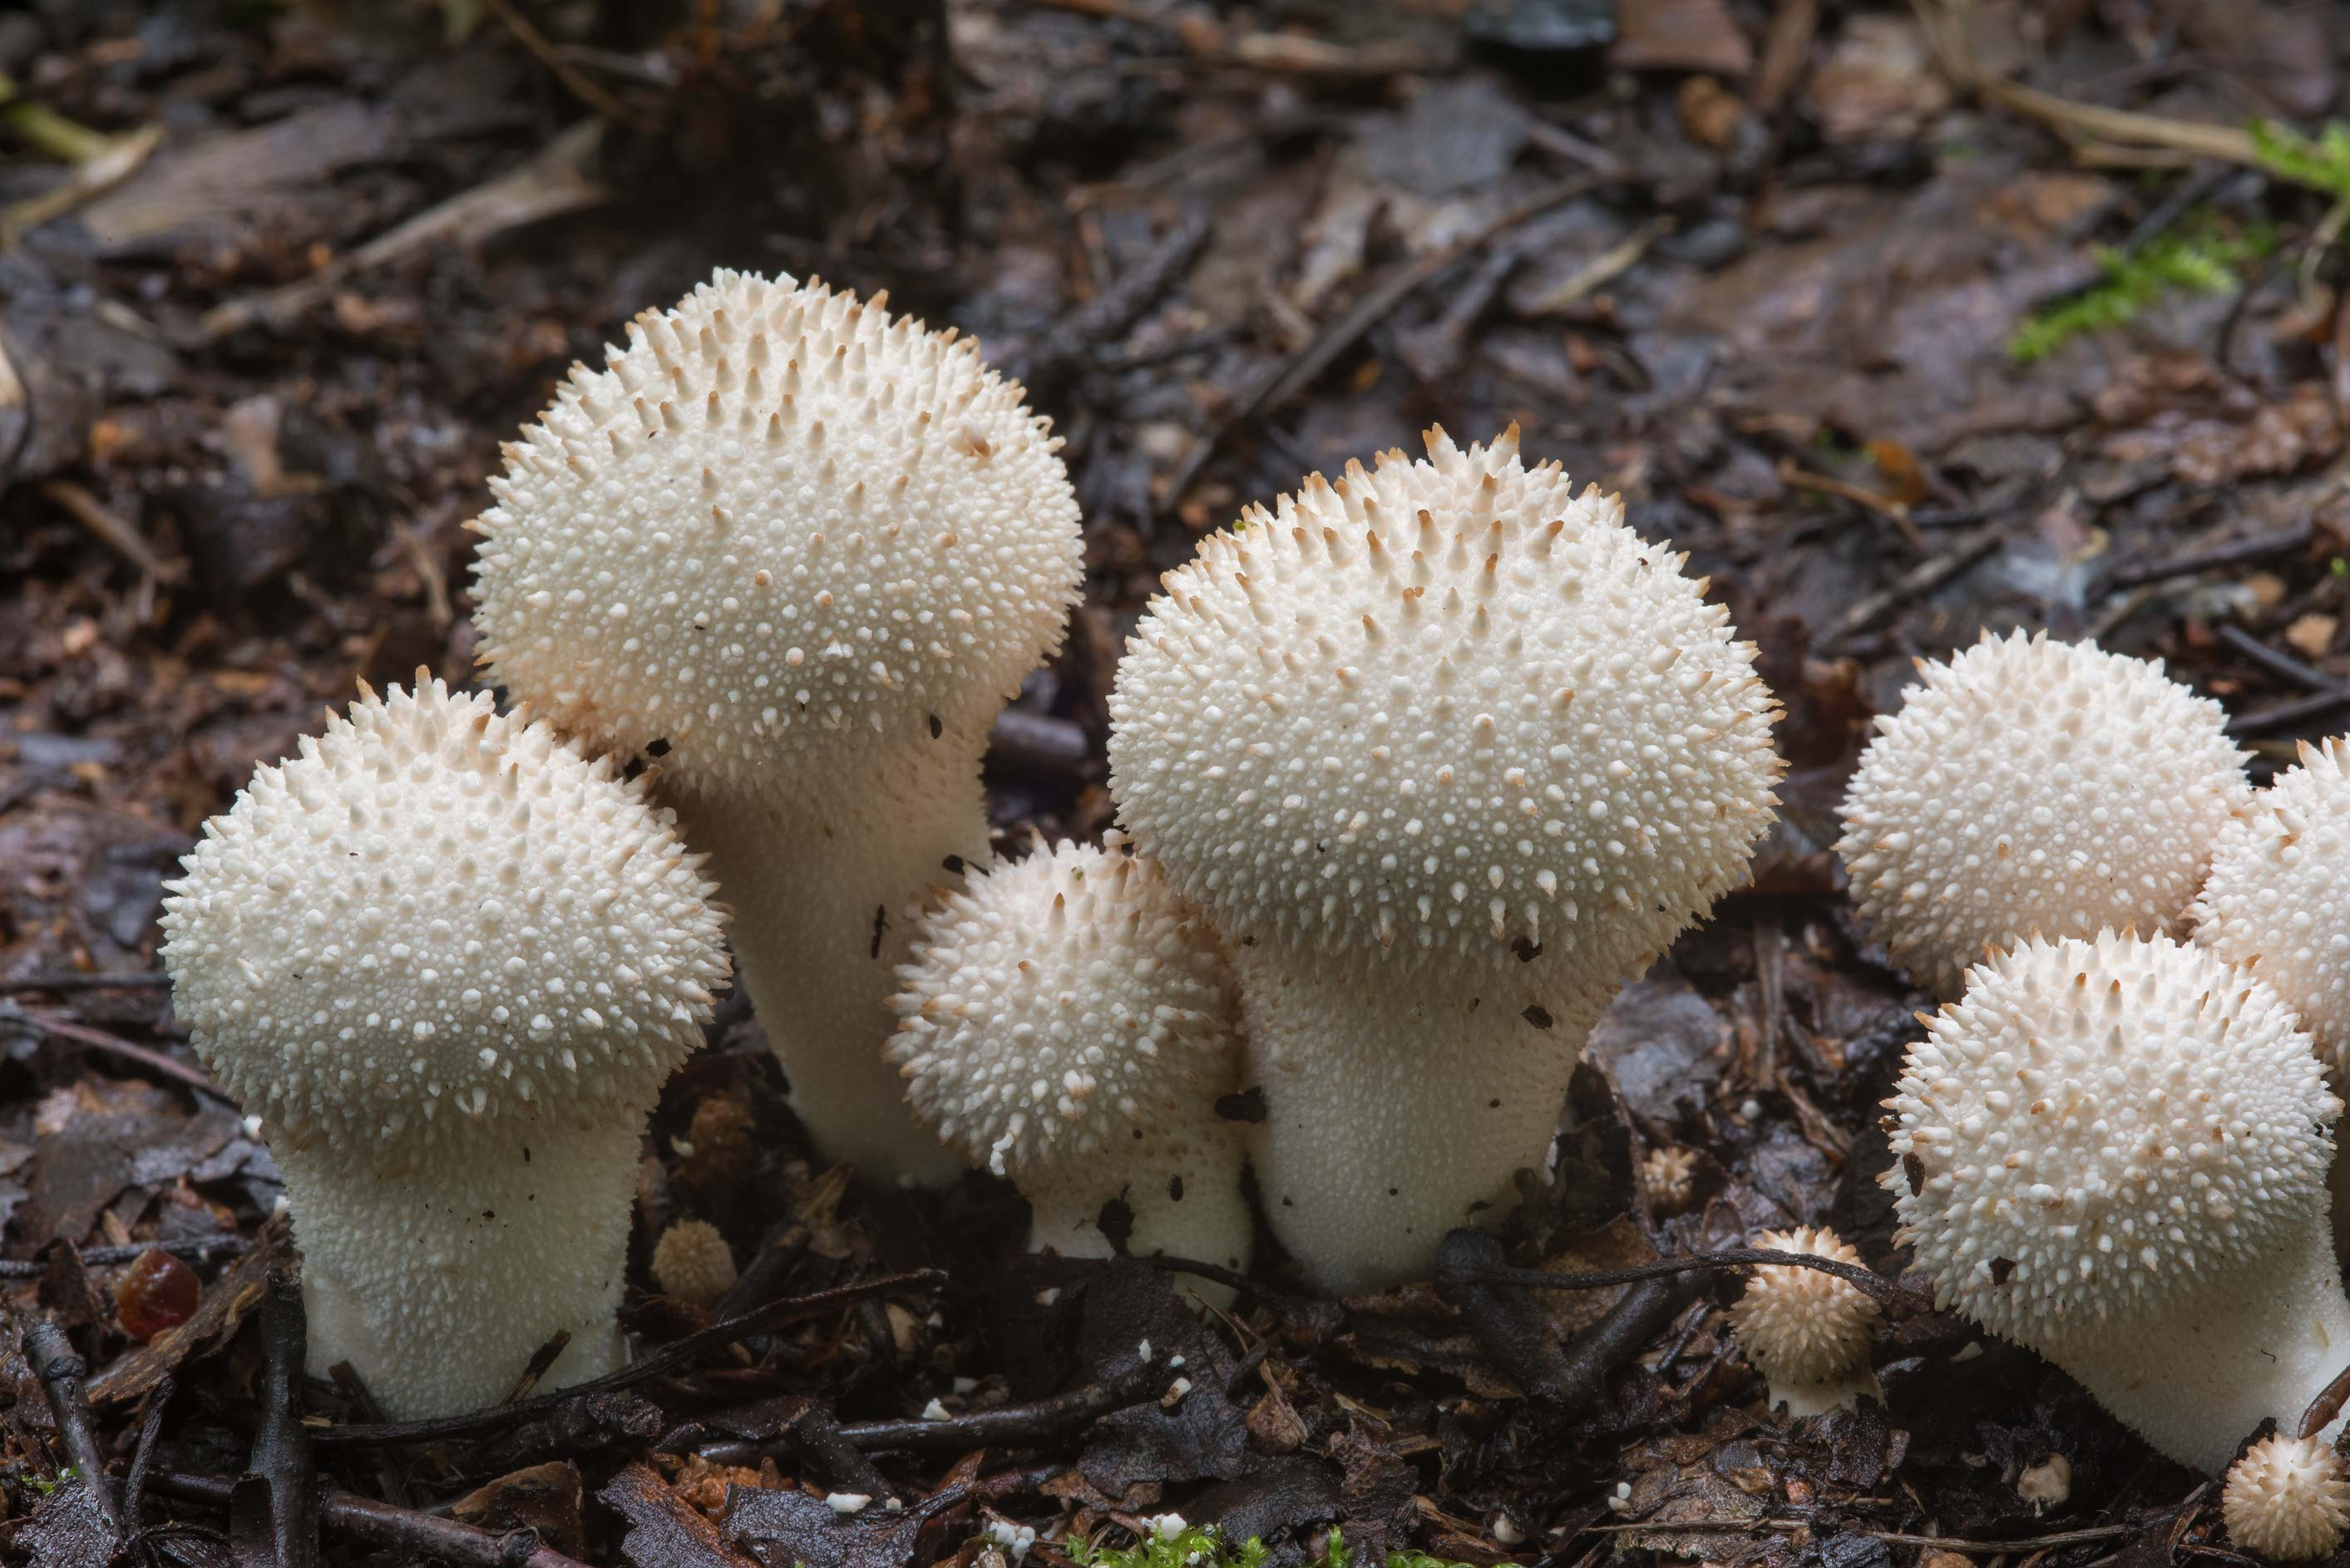 Common puffball mushrooms (Lycoperdon perlatum) in Sosnovka Park. St.Petersburg, Russia